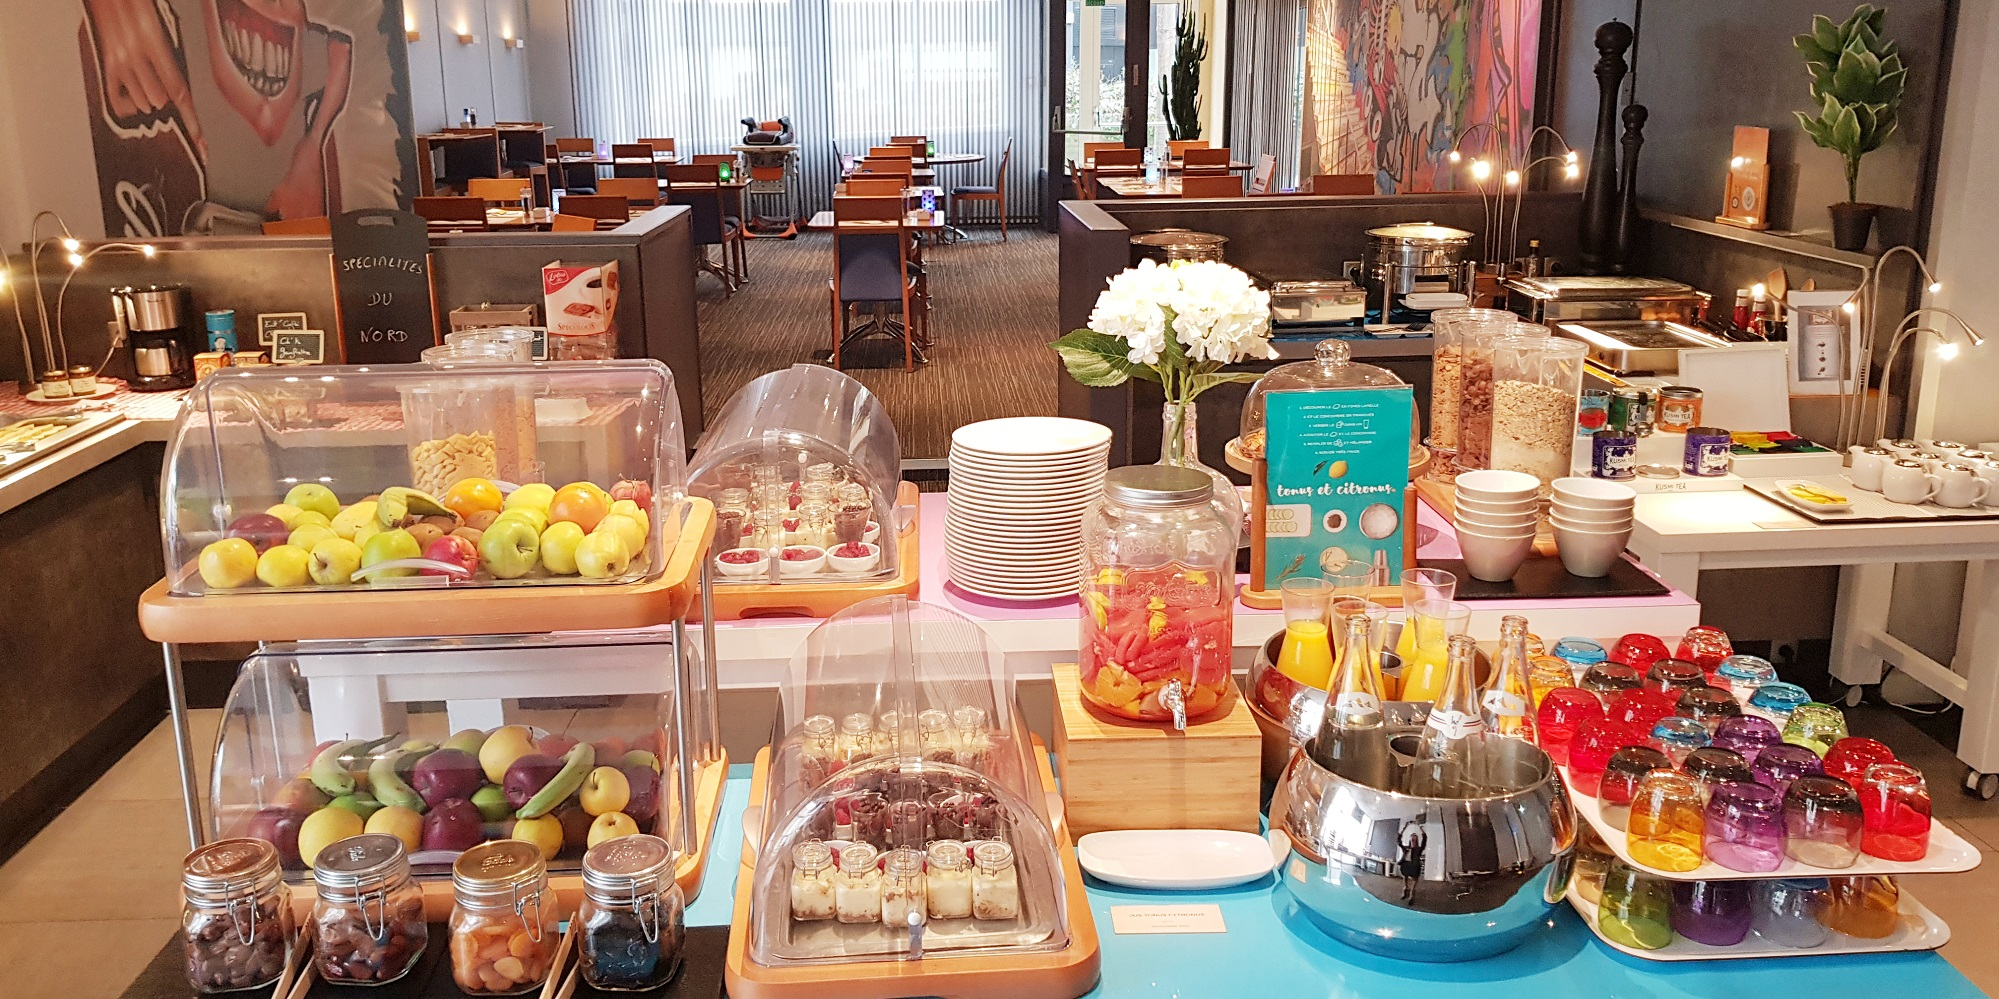 Brunch Novotel Centre Grand Place (59000 Lille)